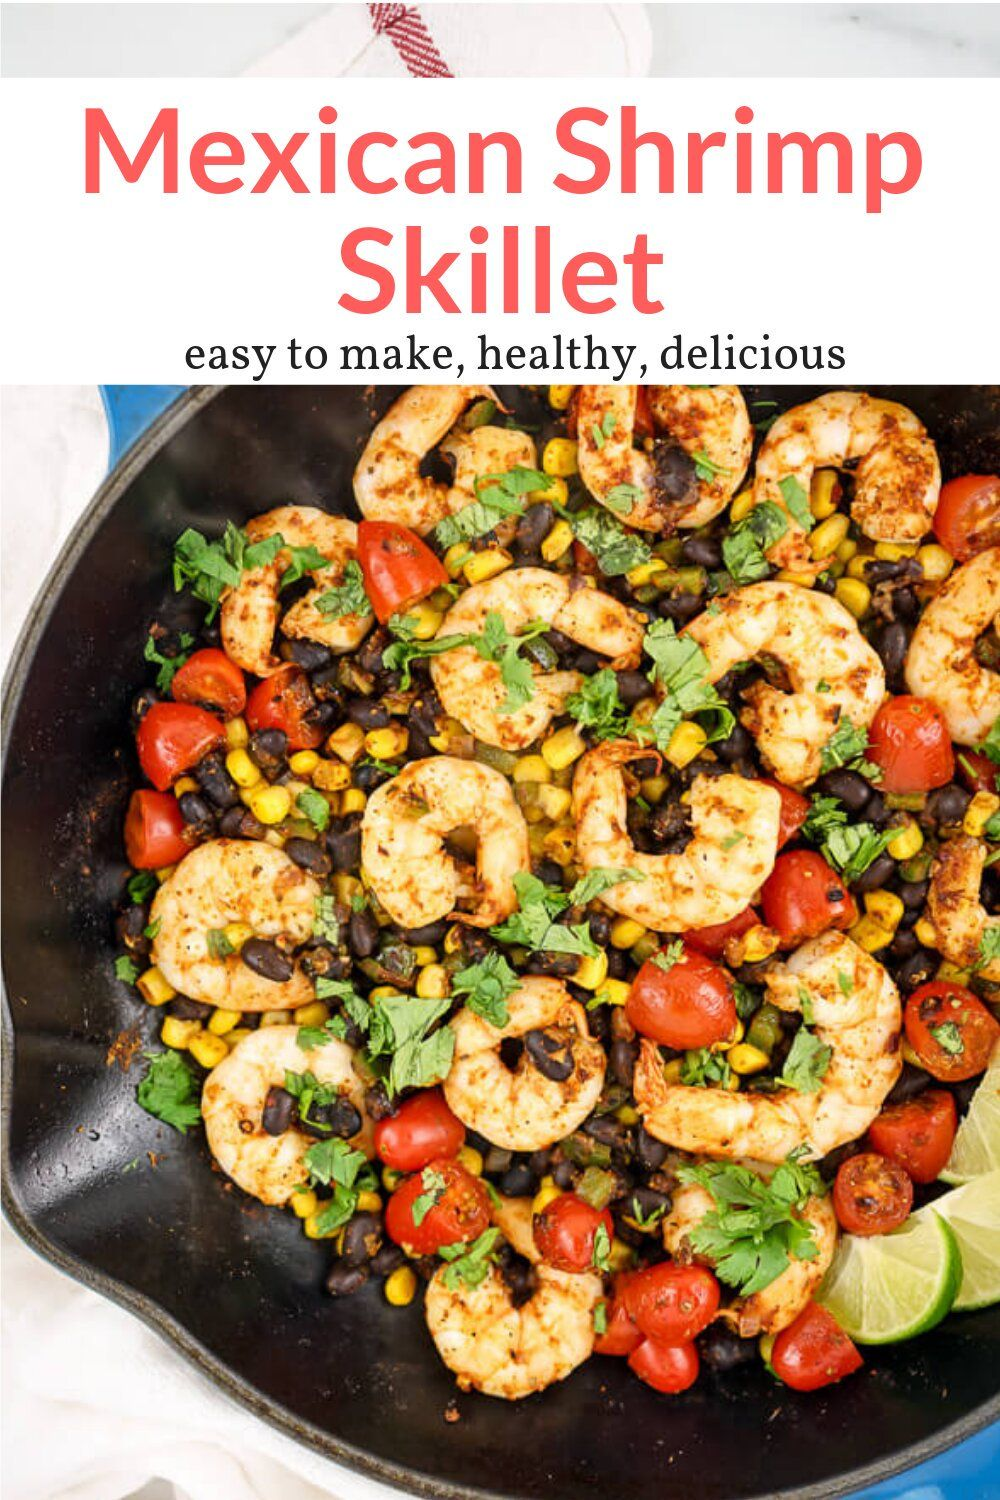 Mexican Shrimp Skillet You won't believe how good this simple 15 minute meal tastes! Packed with spicy shrimp, black beans, corn, and tomatoes then topped with fresh cilantro and lime juice.